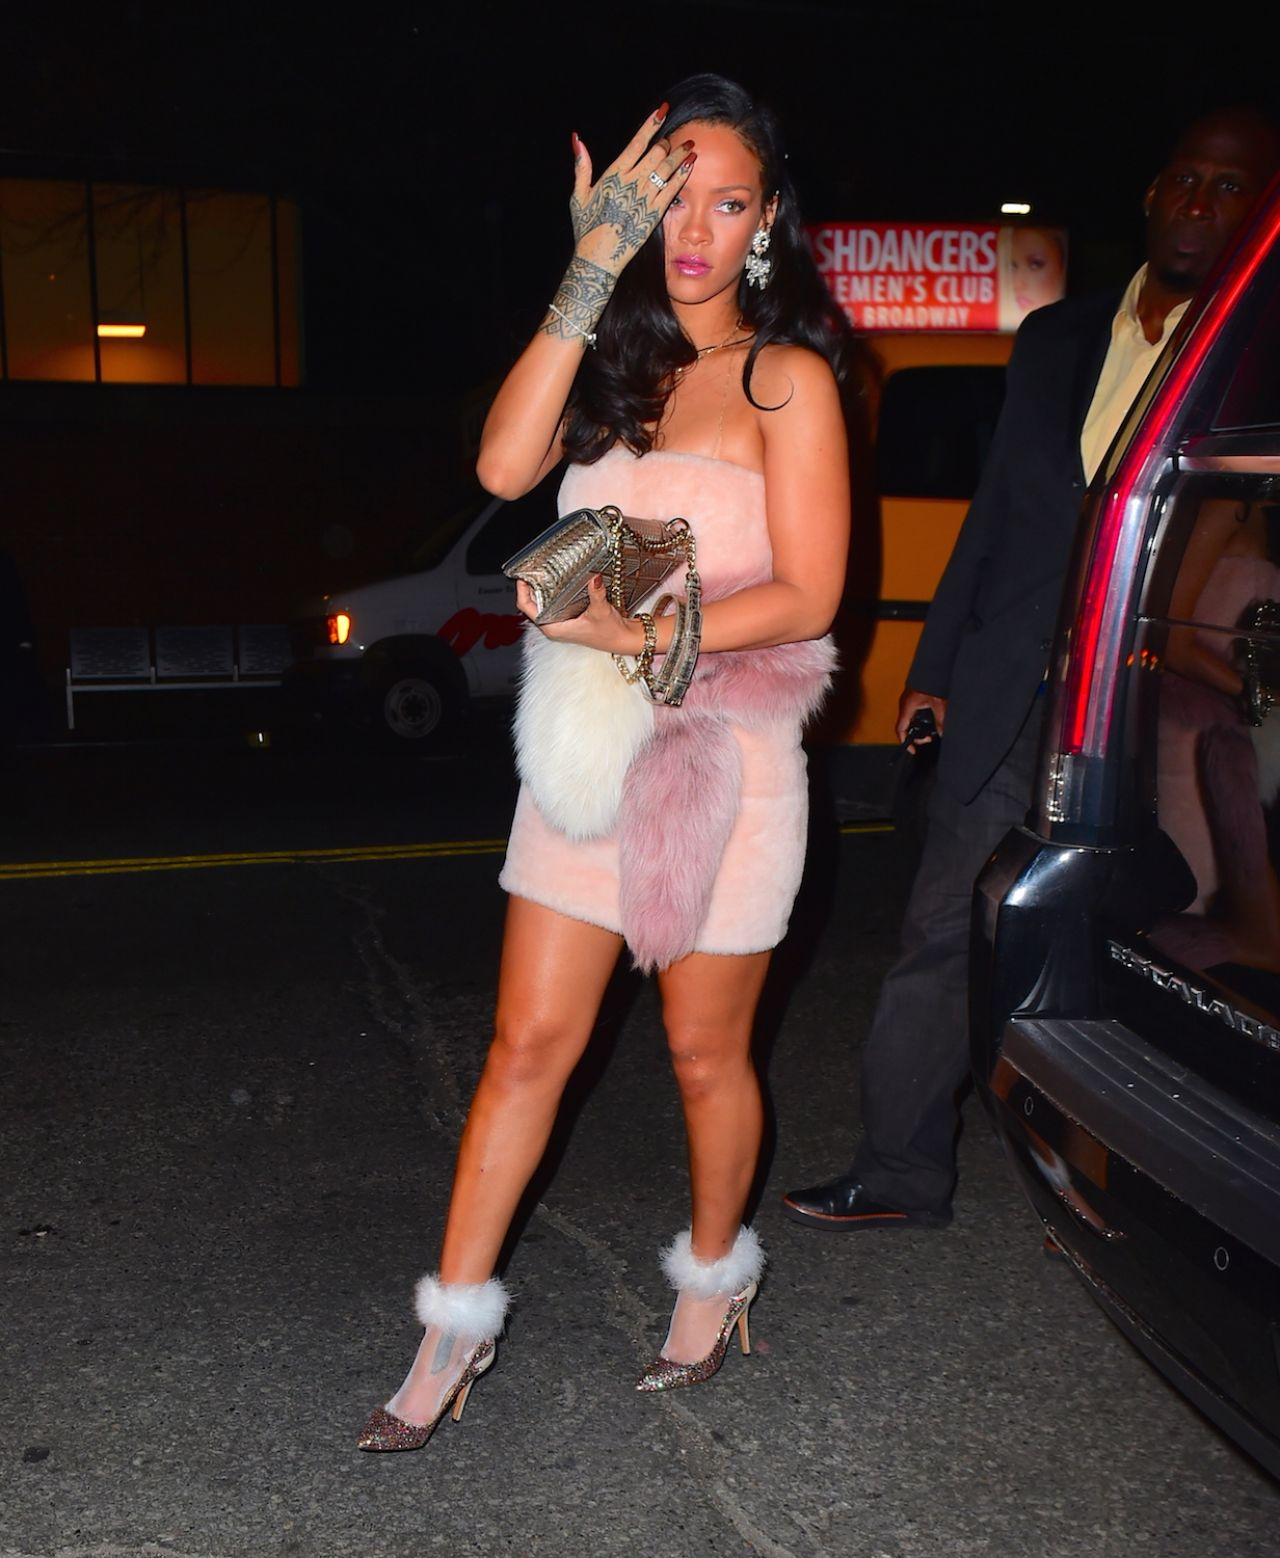 rihanna-night-out-style-outside-sono-club-in-new-york-city-01-01-2016-4